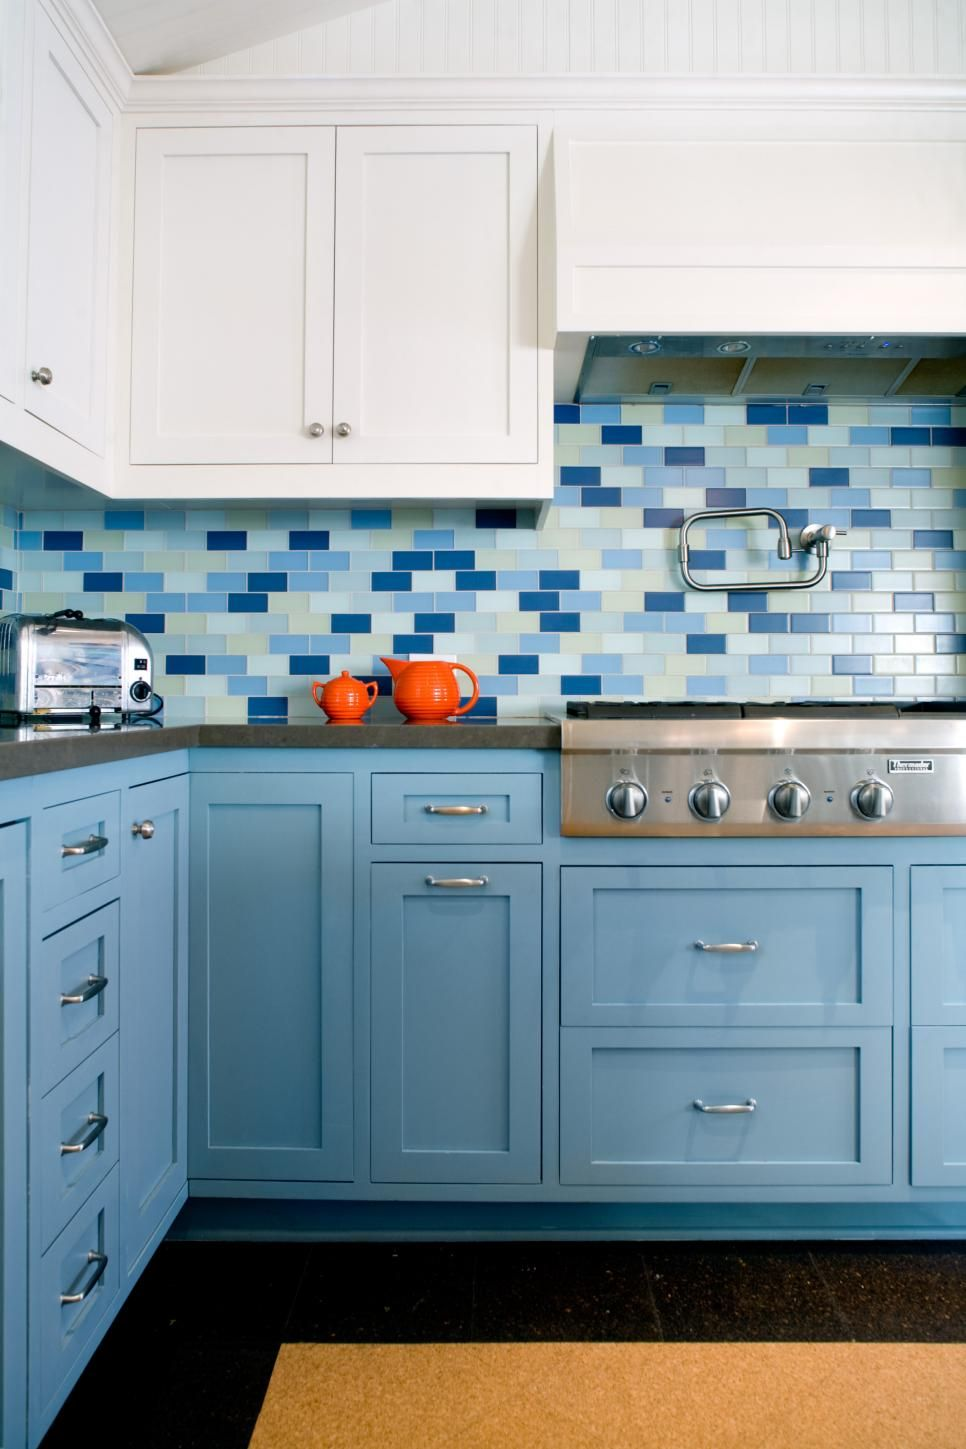 Creative Kitchen Design Stunning 11 Creative Subway Tile Backsplash Ideas  Subway Tiles Kitchen Decorating Design